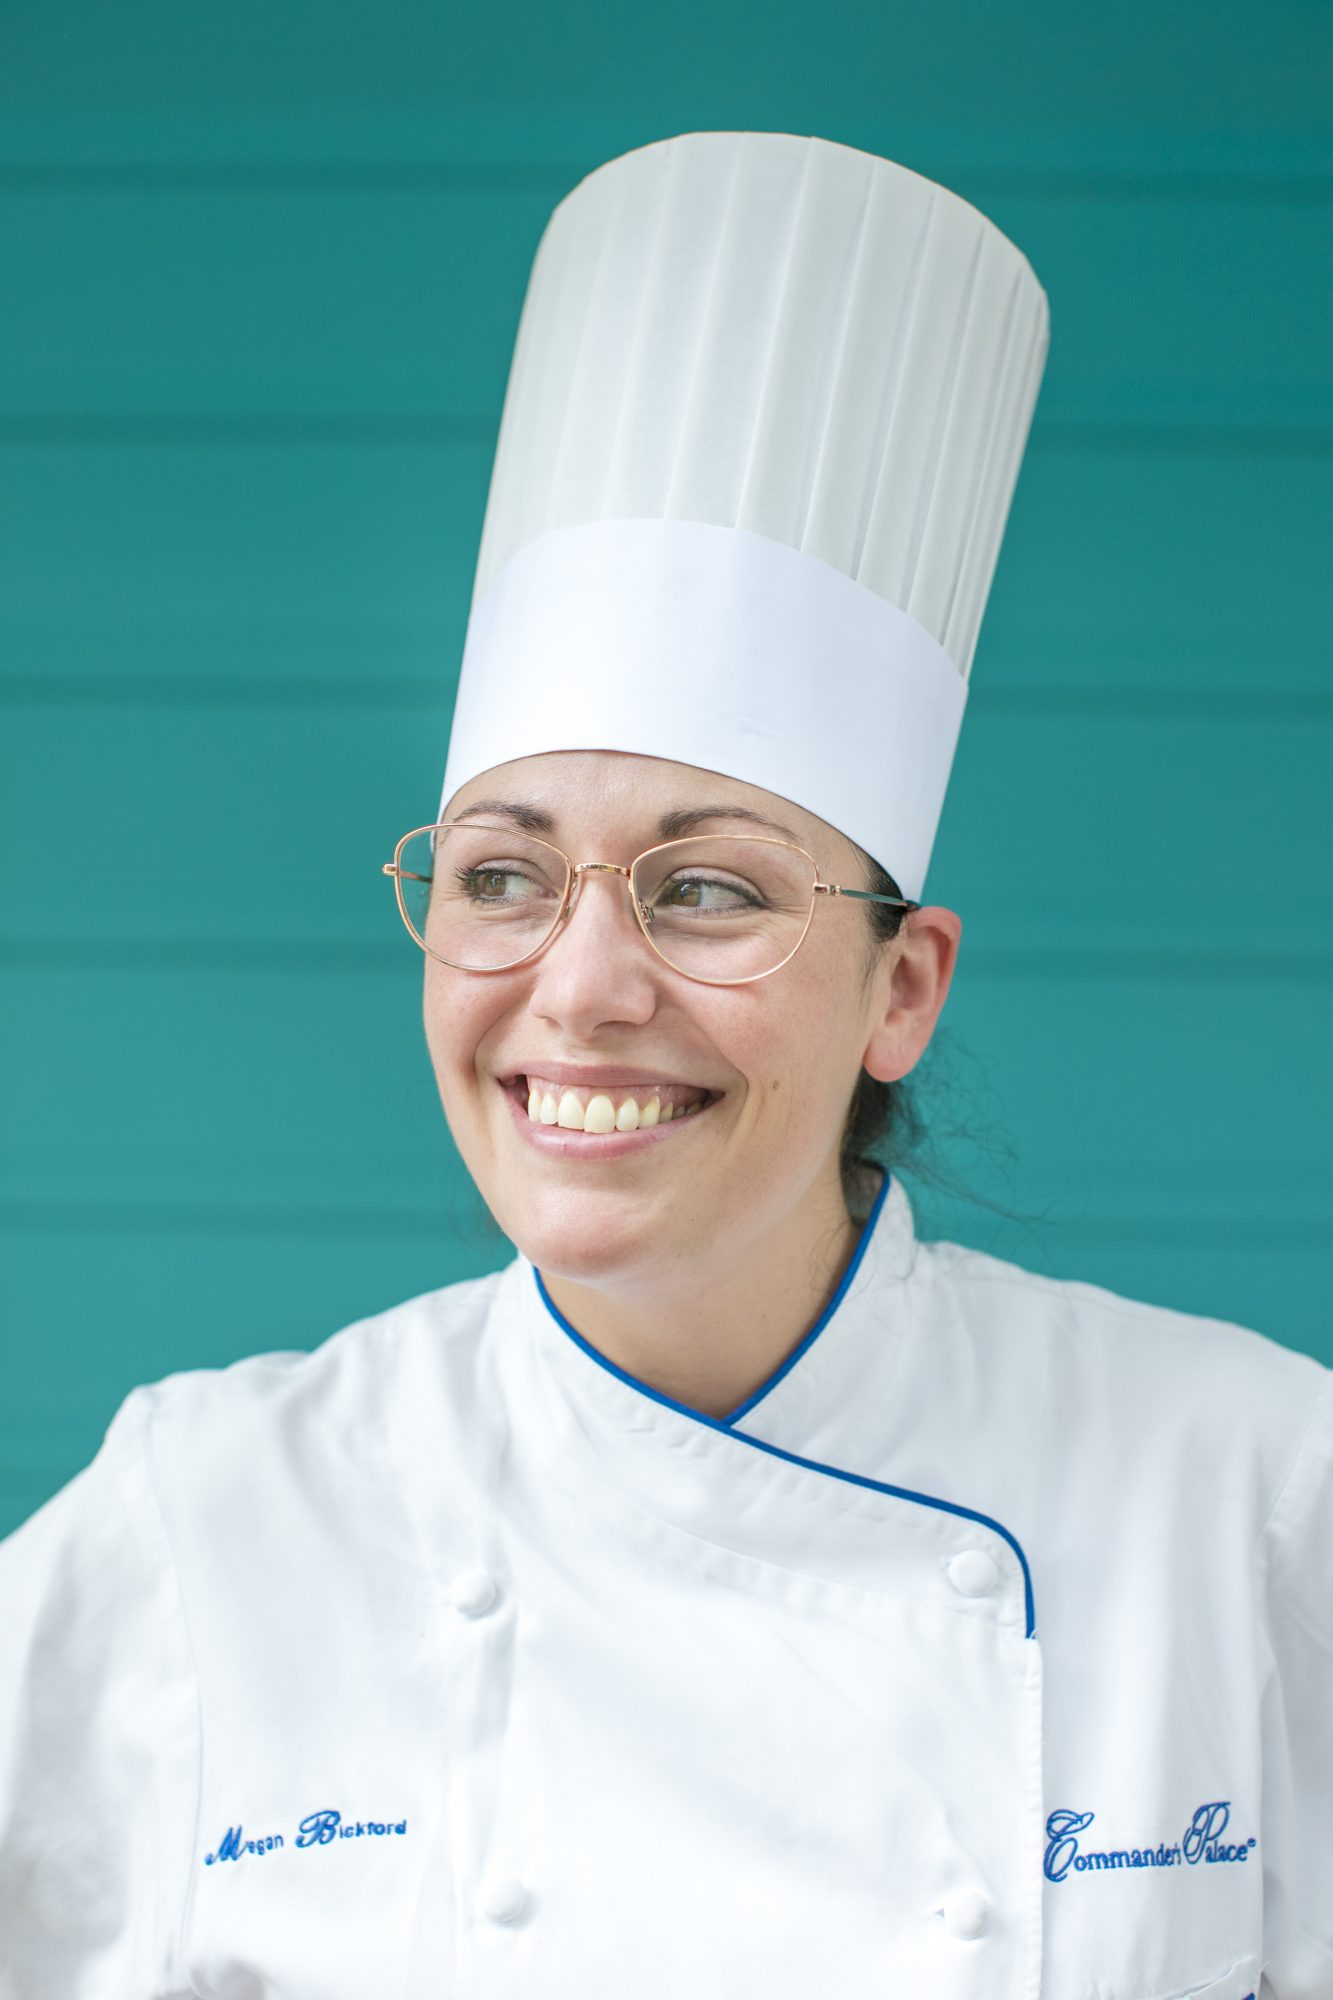 Commanders Palace Chef Meg Bickford